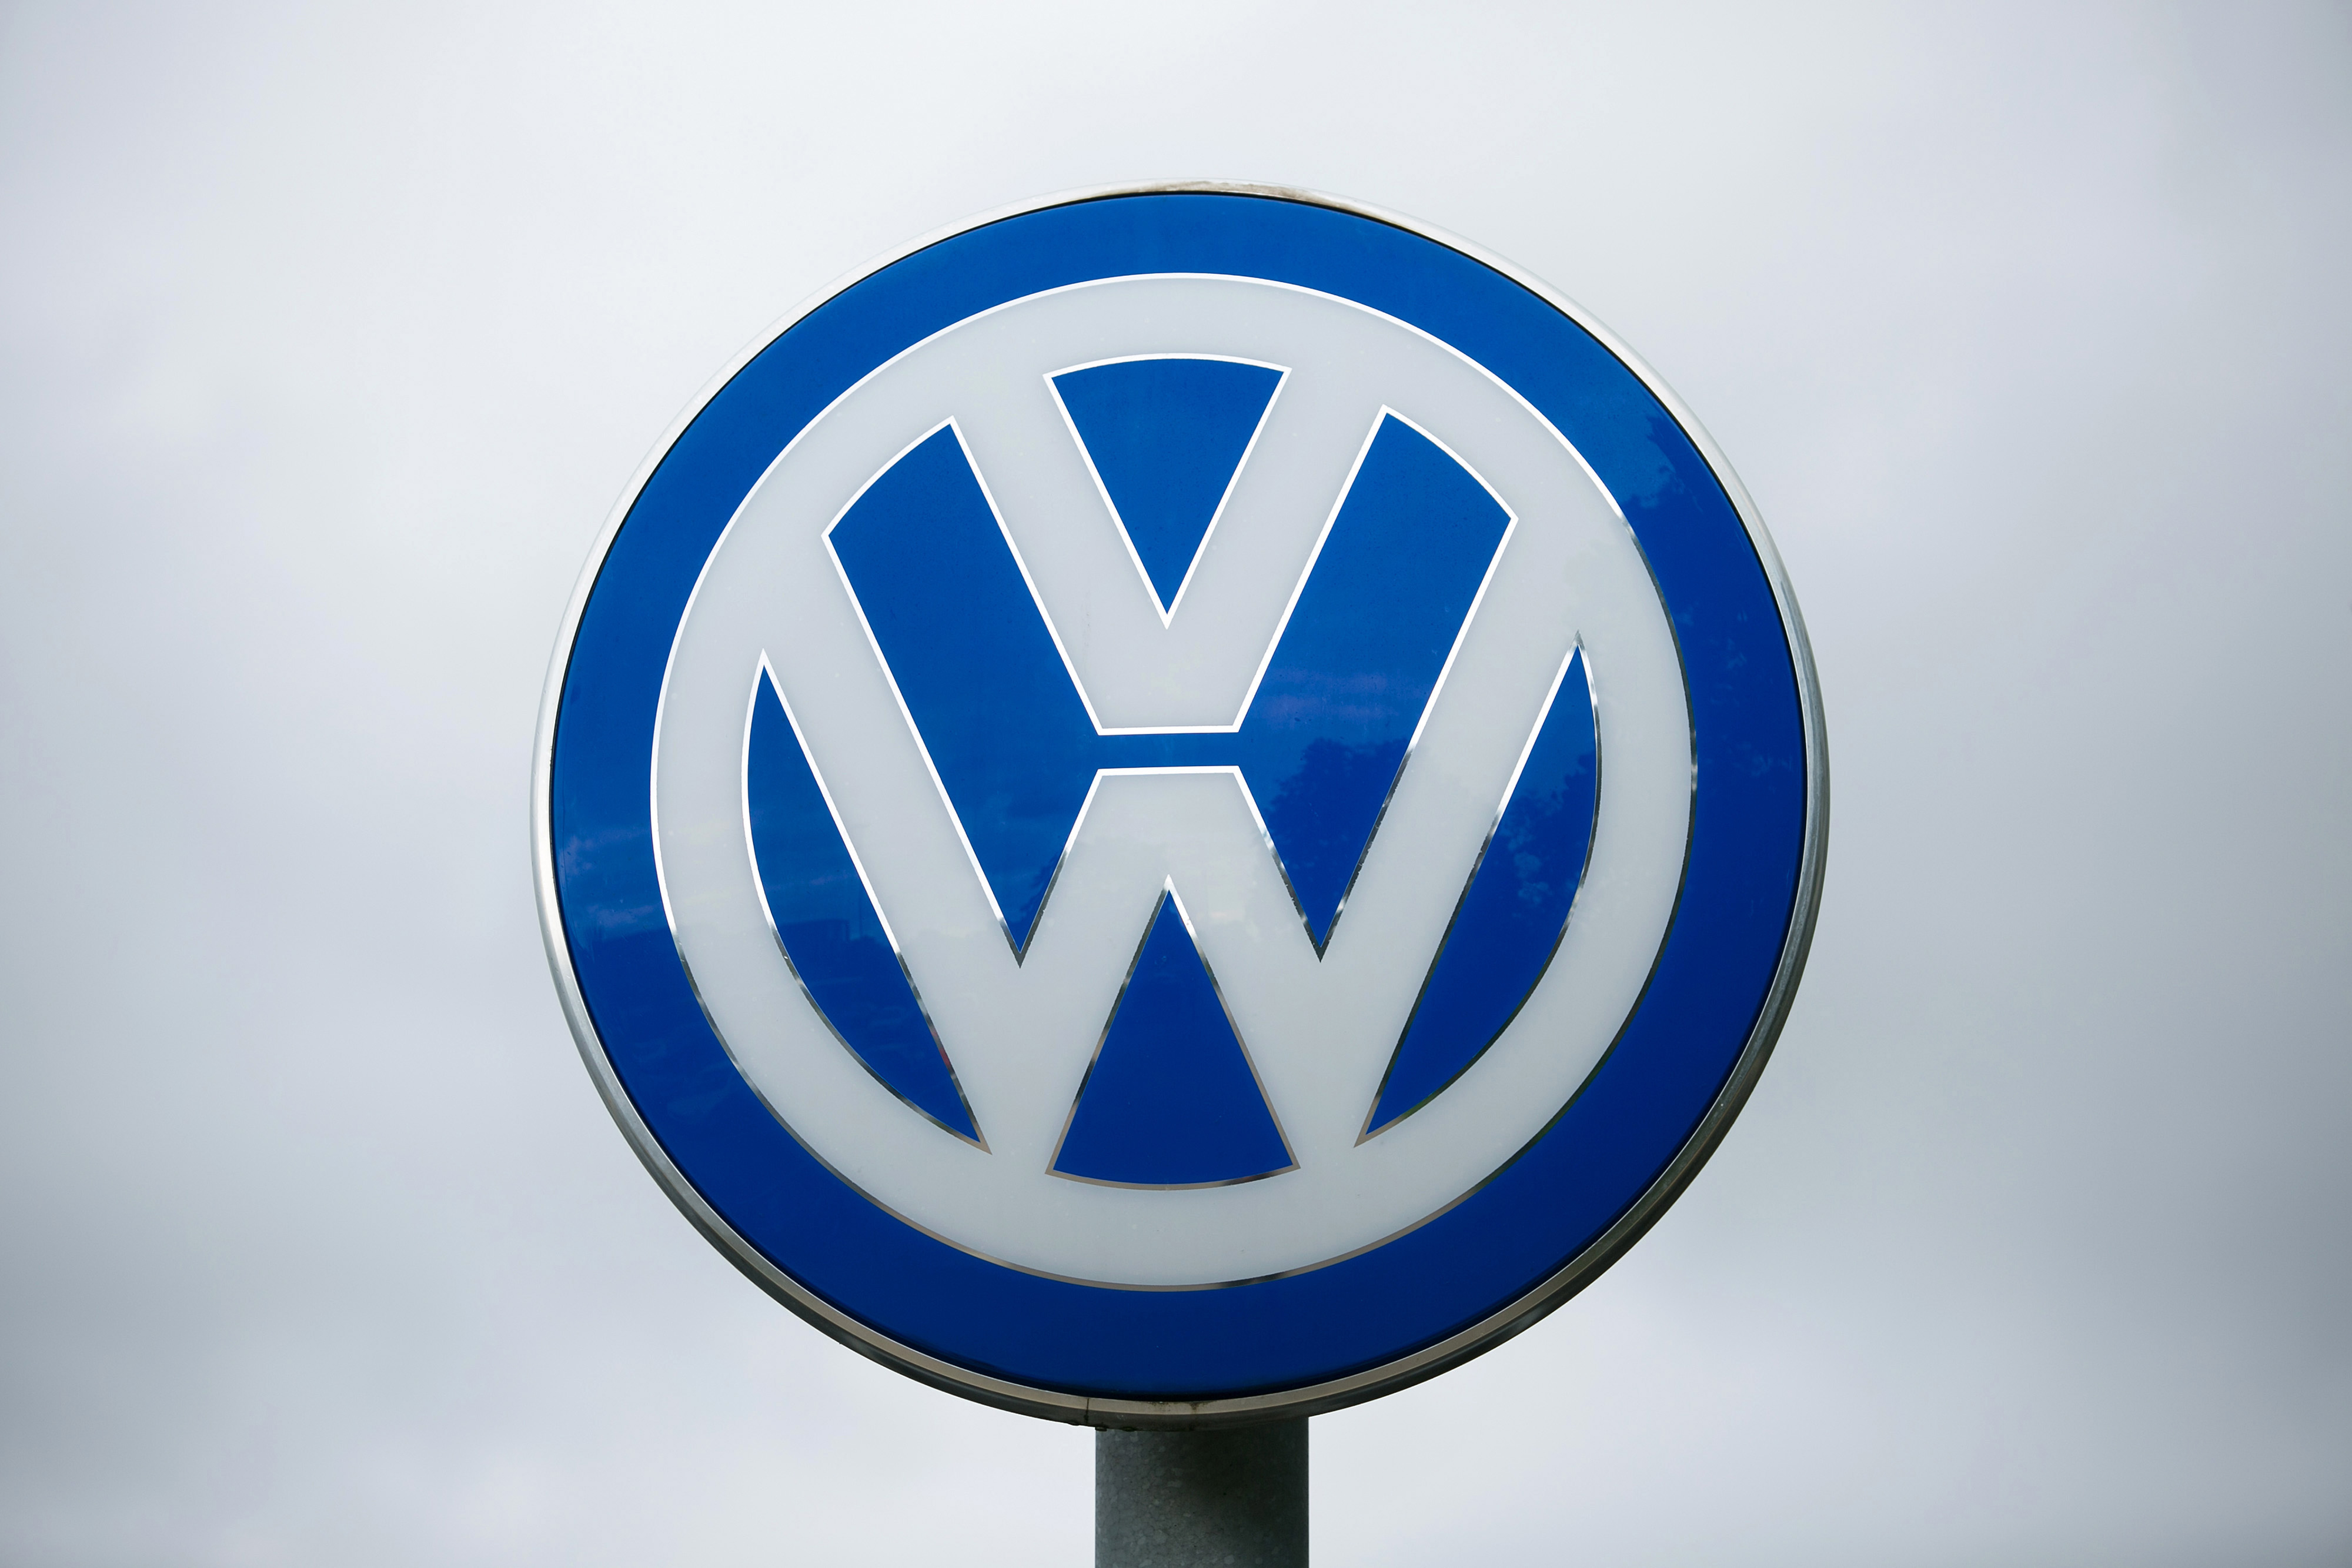 The VW logo outside the Volkswagen headquarters in Wolfsburg, Germany on Sept. 23, 2015.